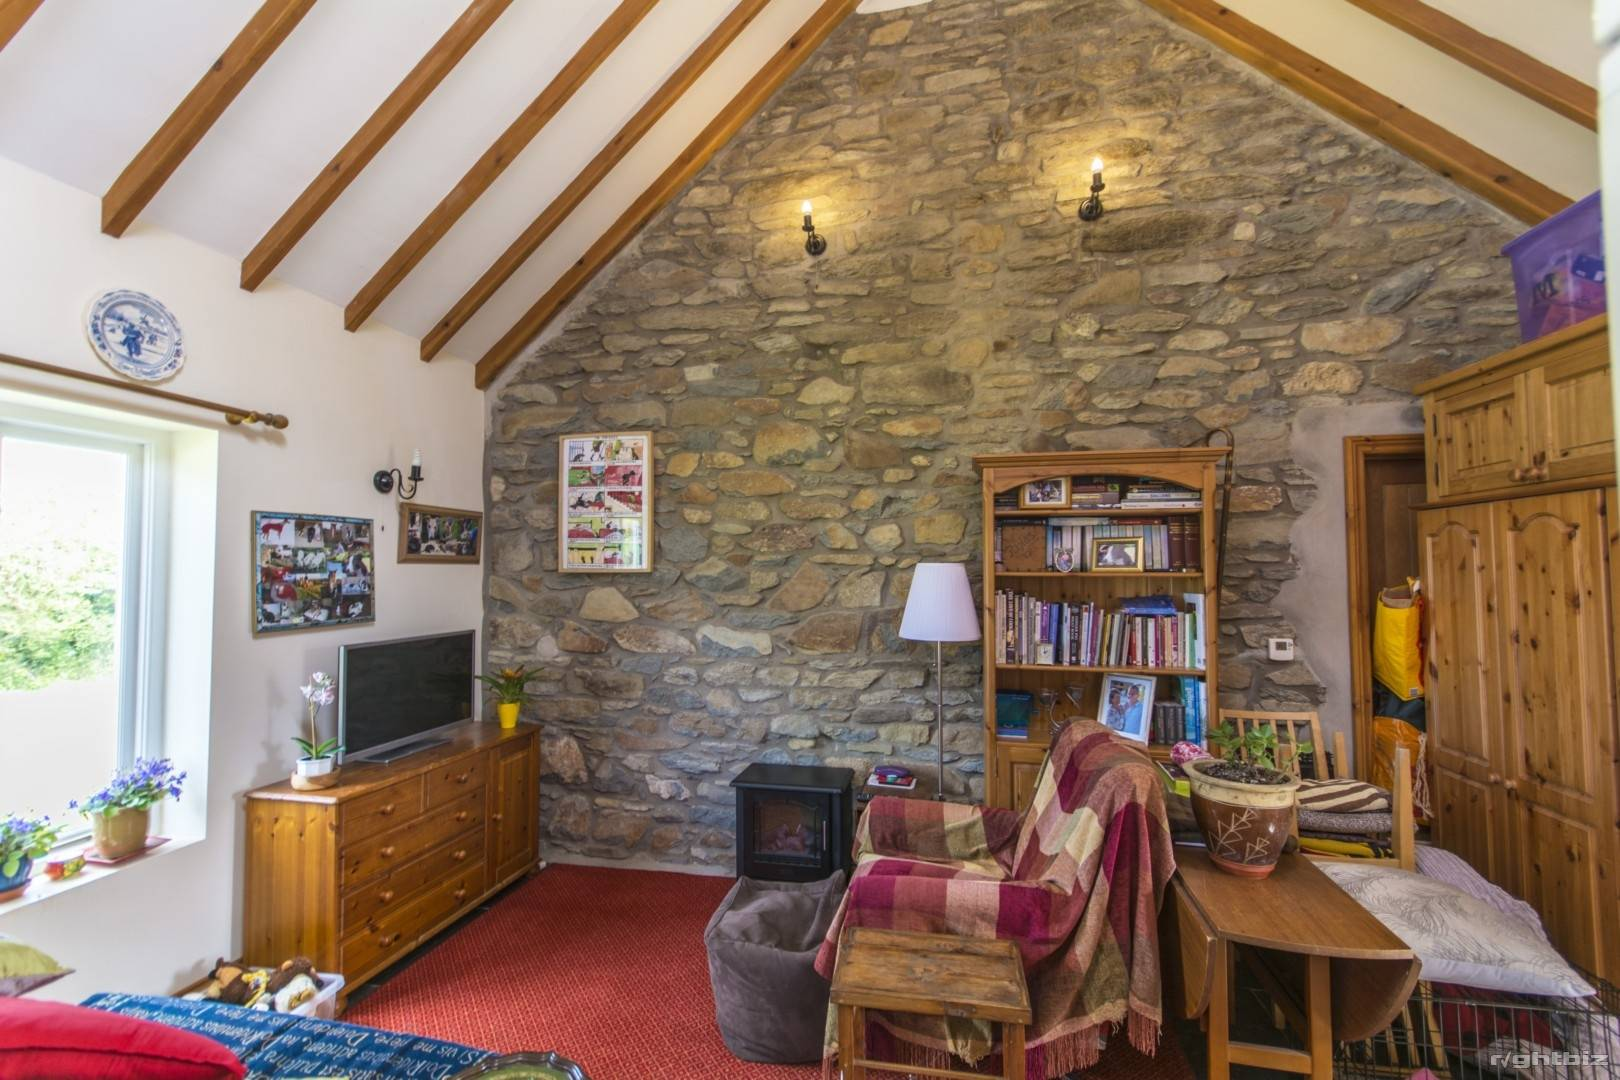 HOLIDAY LETTING BUSINESS/ LIVERY POTENTIAL + SMALLHOLDING + STABLES SET IN 10 ACRES - PEMBROKESHIRE - Image 12